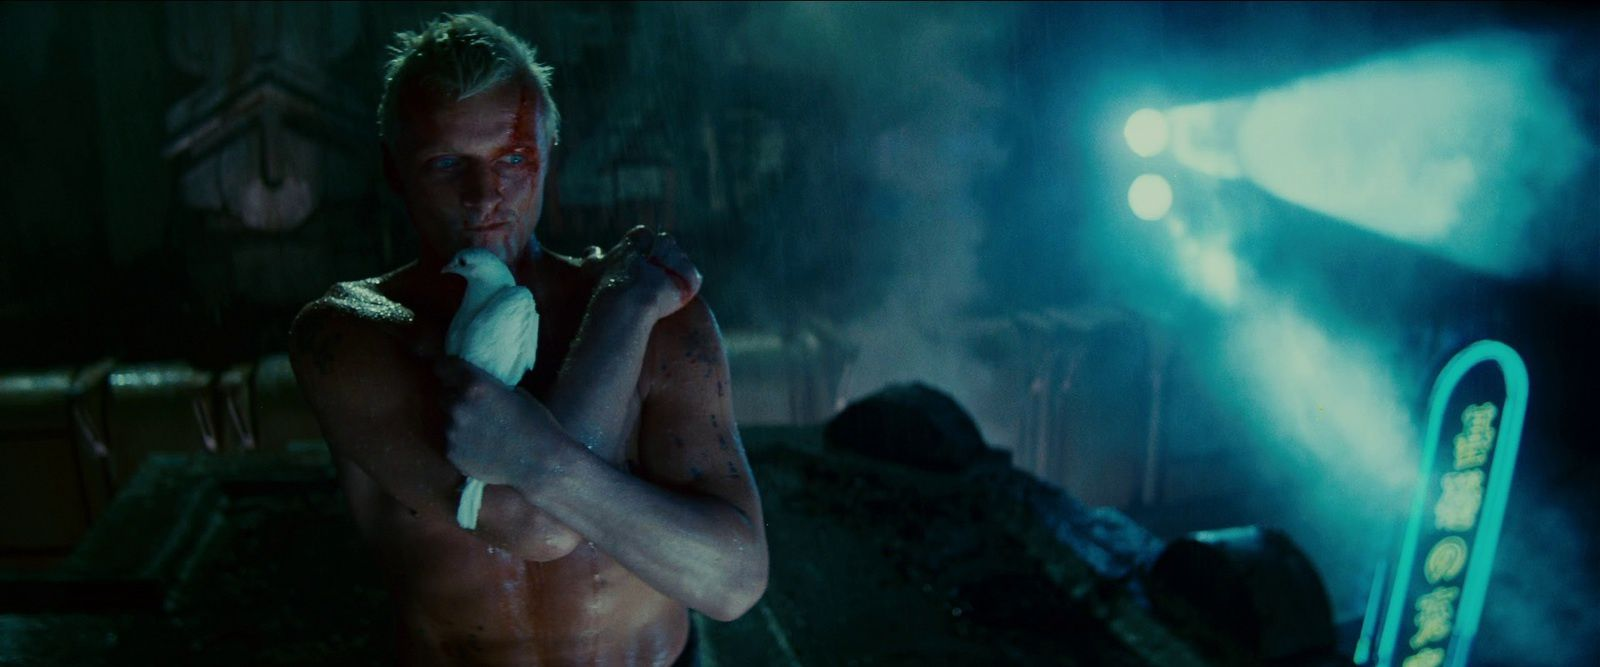 « Blade Runner » : « Wake up, time to die »